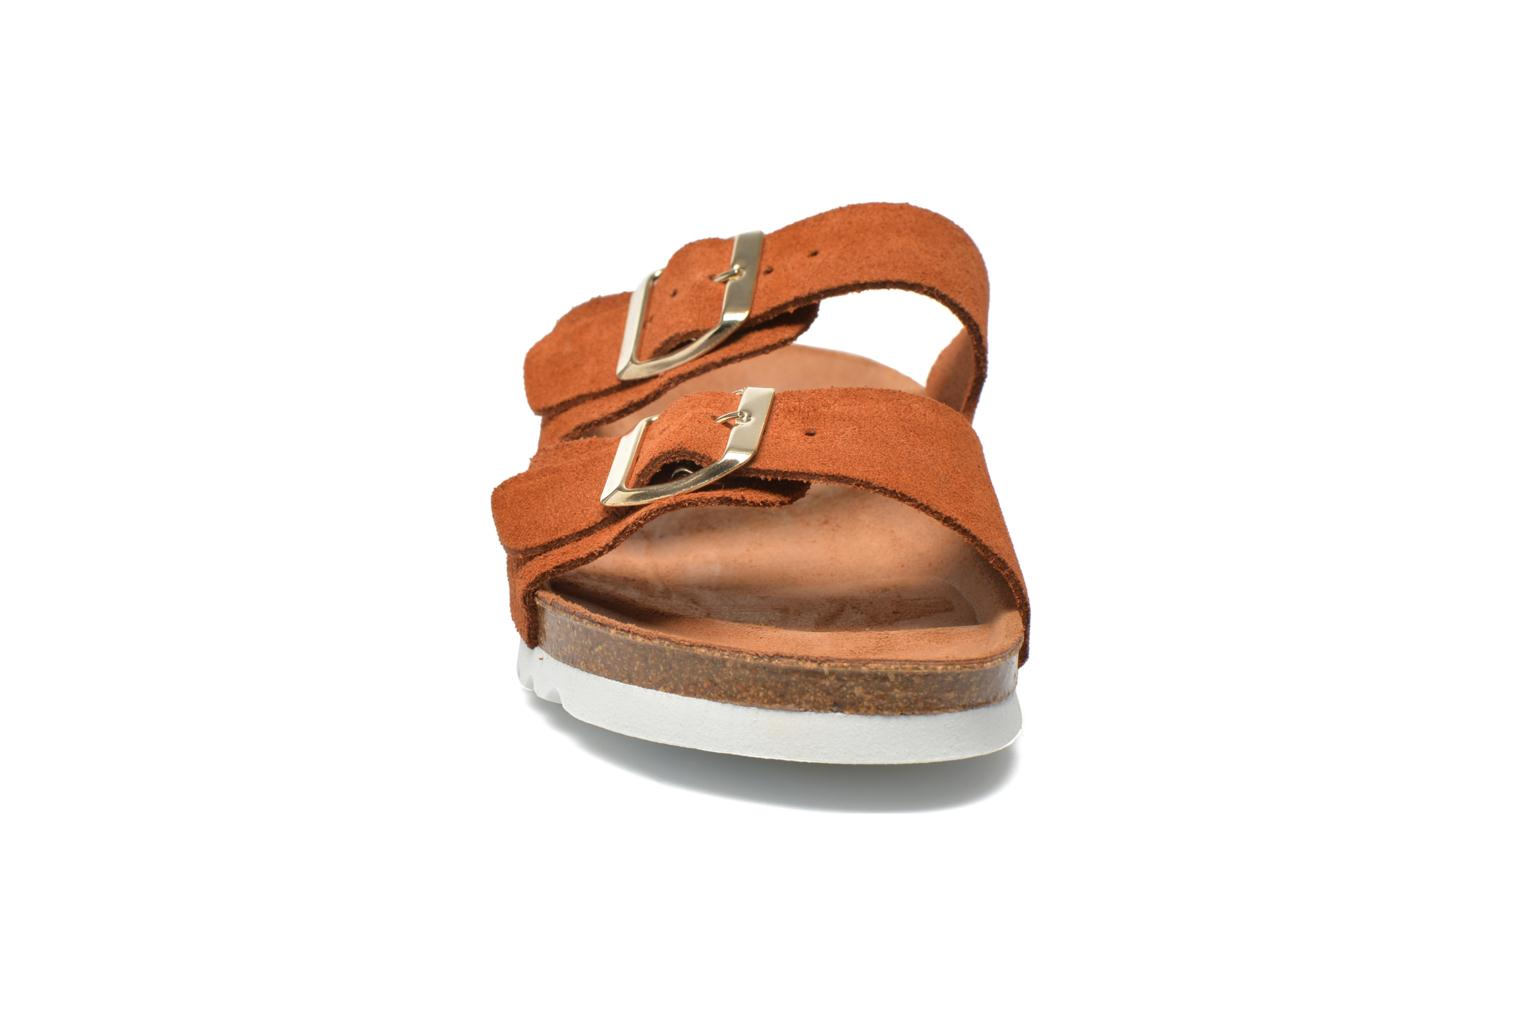 Zuecos Vero Moda Julia Leather Sandal Marrón vista del modelo